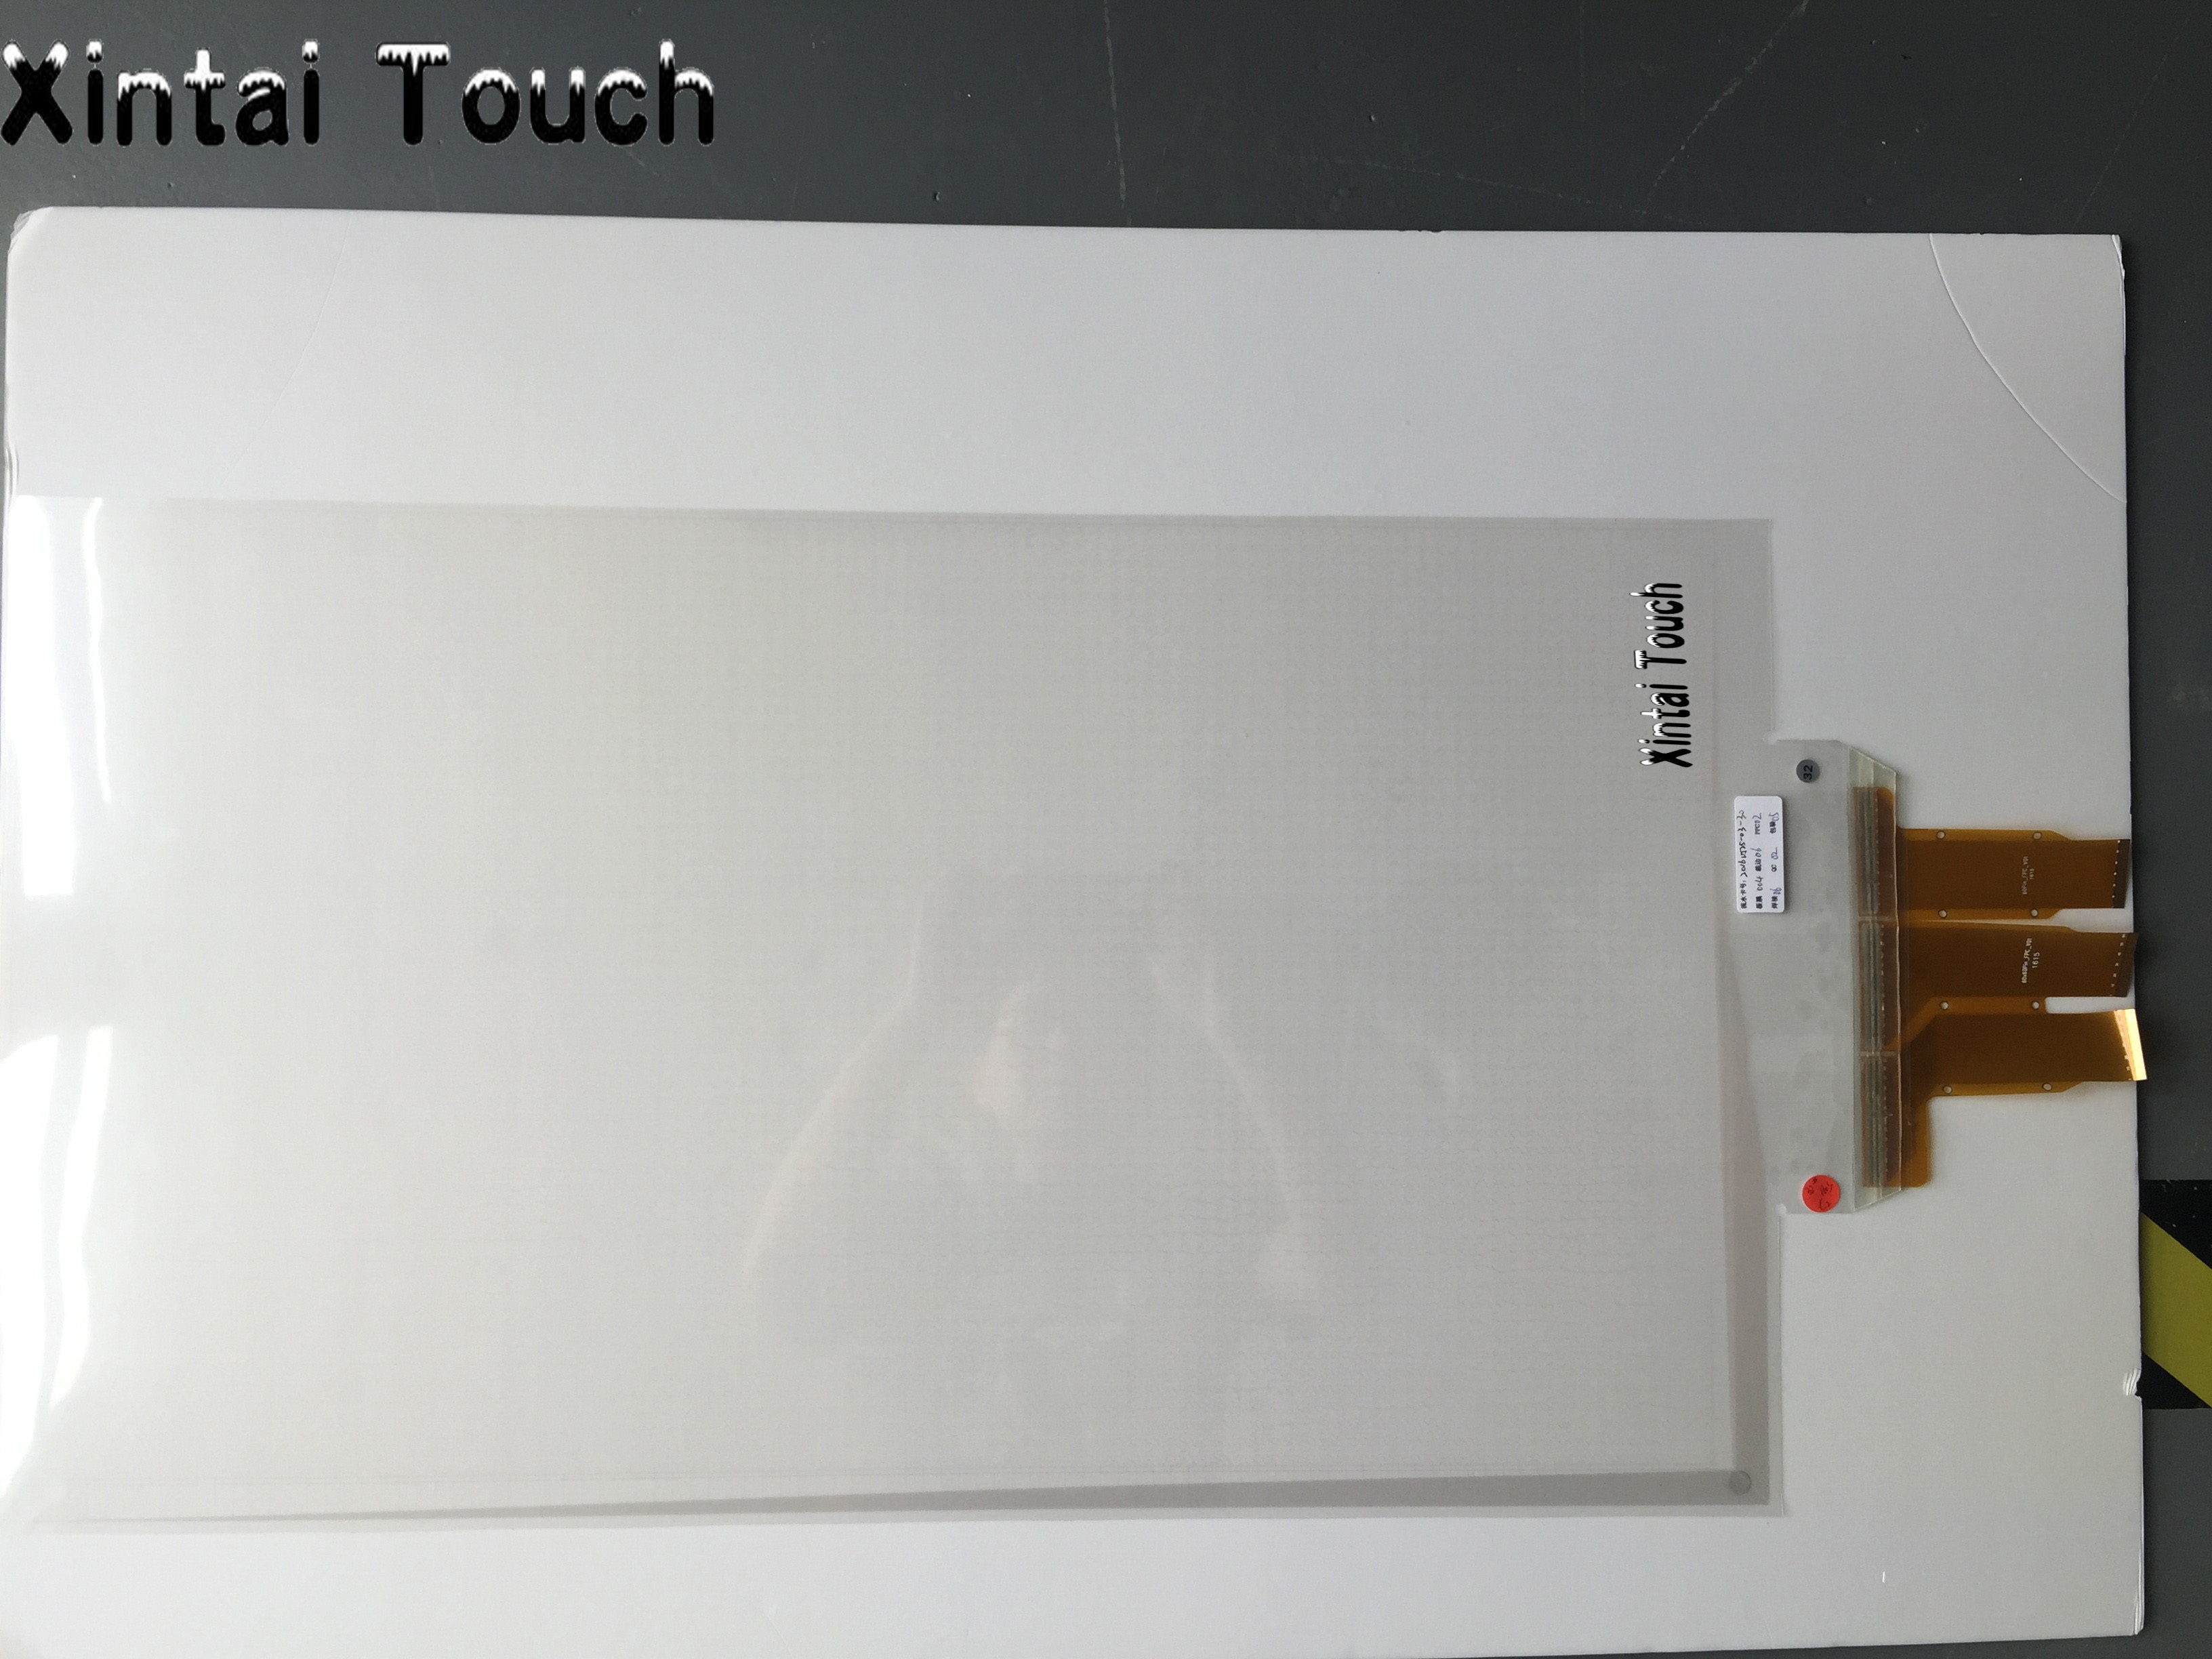 47 inch 6 Points Capacitive Touch Screen Foil Film through galss shop,16:9 format with fast shipping